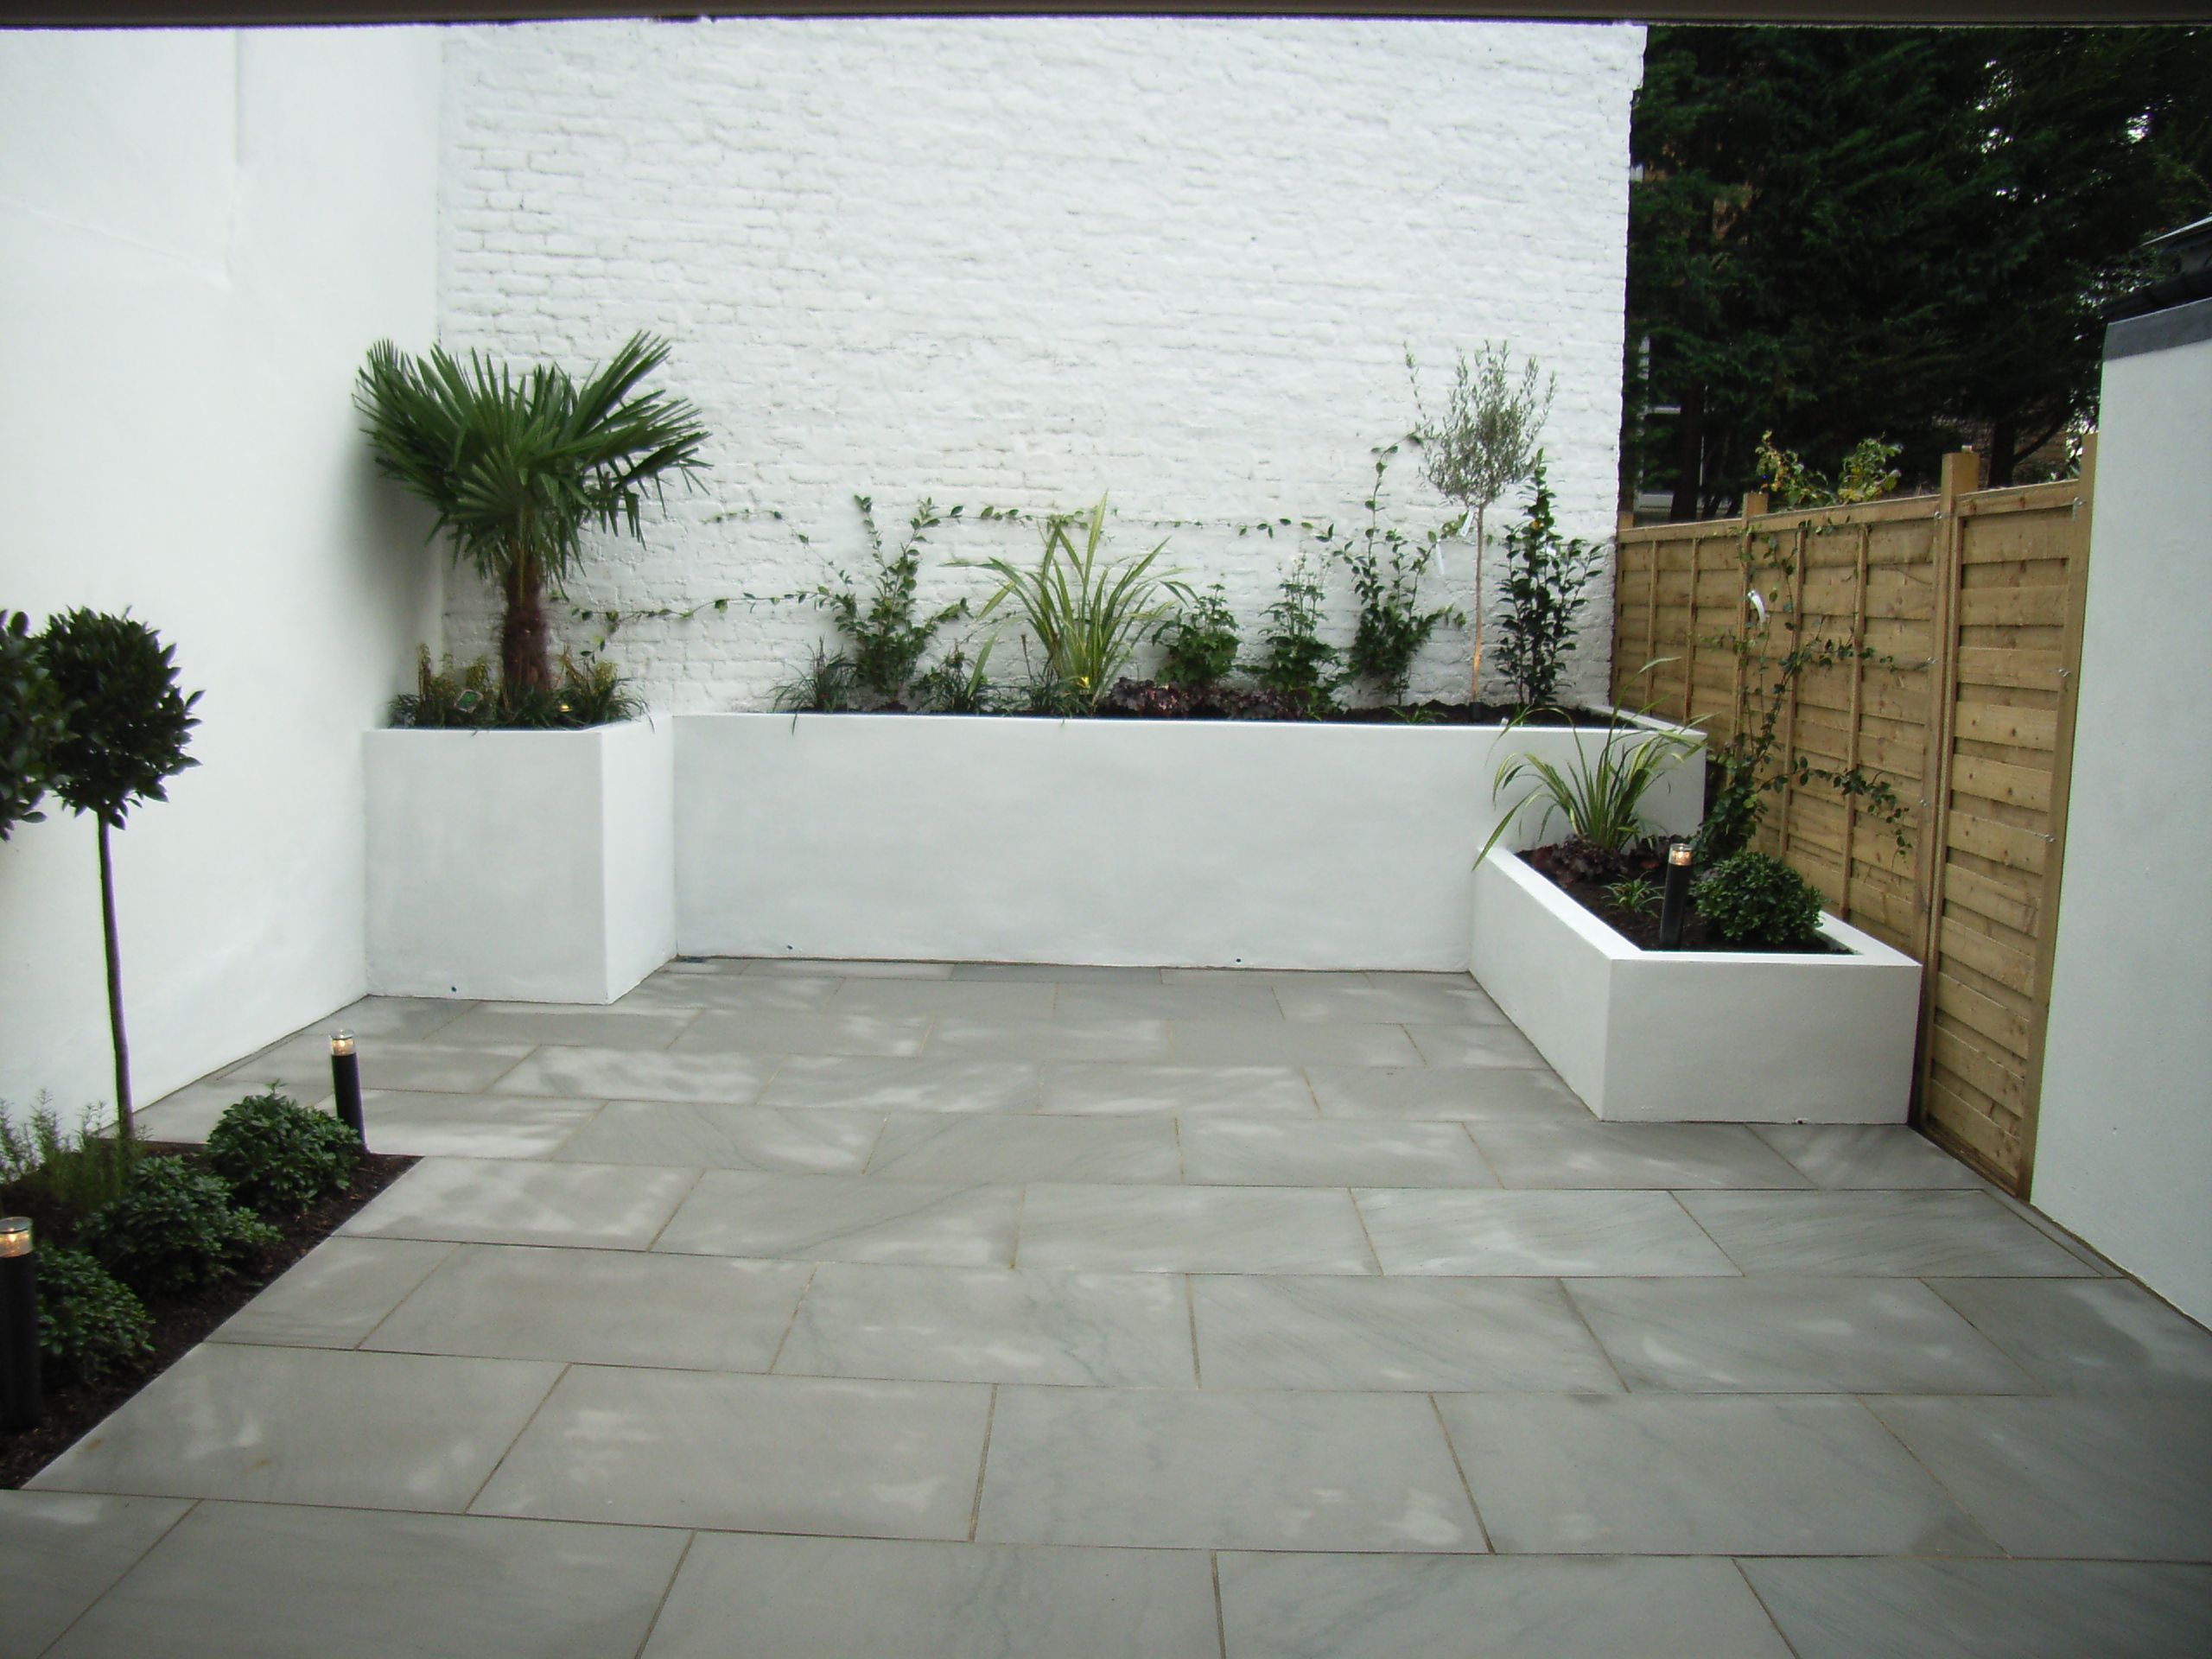 rendered concrete block planters sawn and sand blasted grey